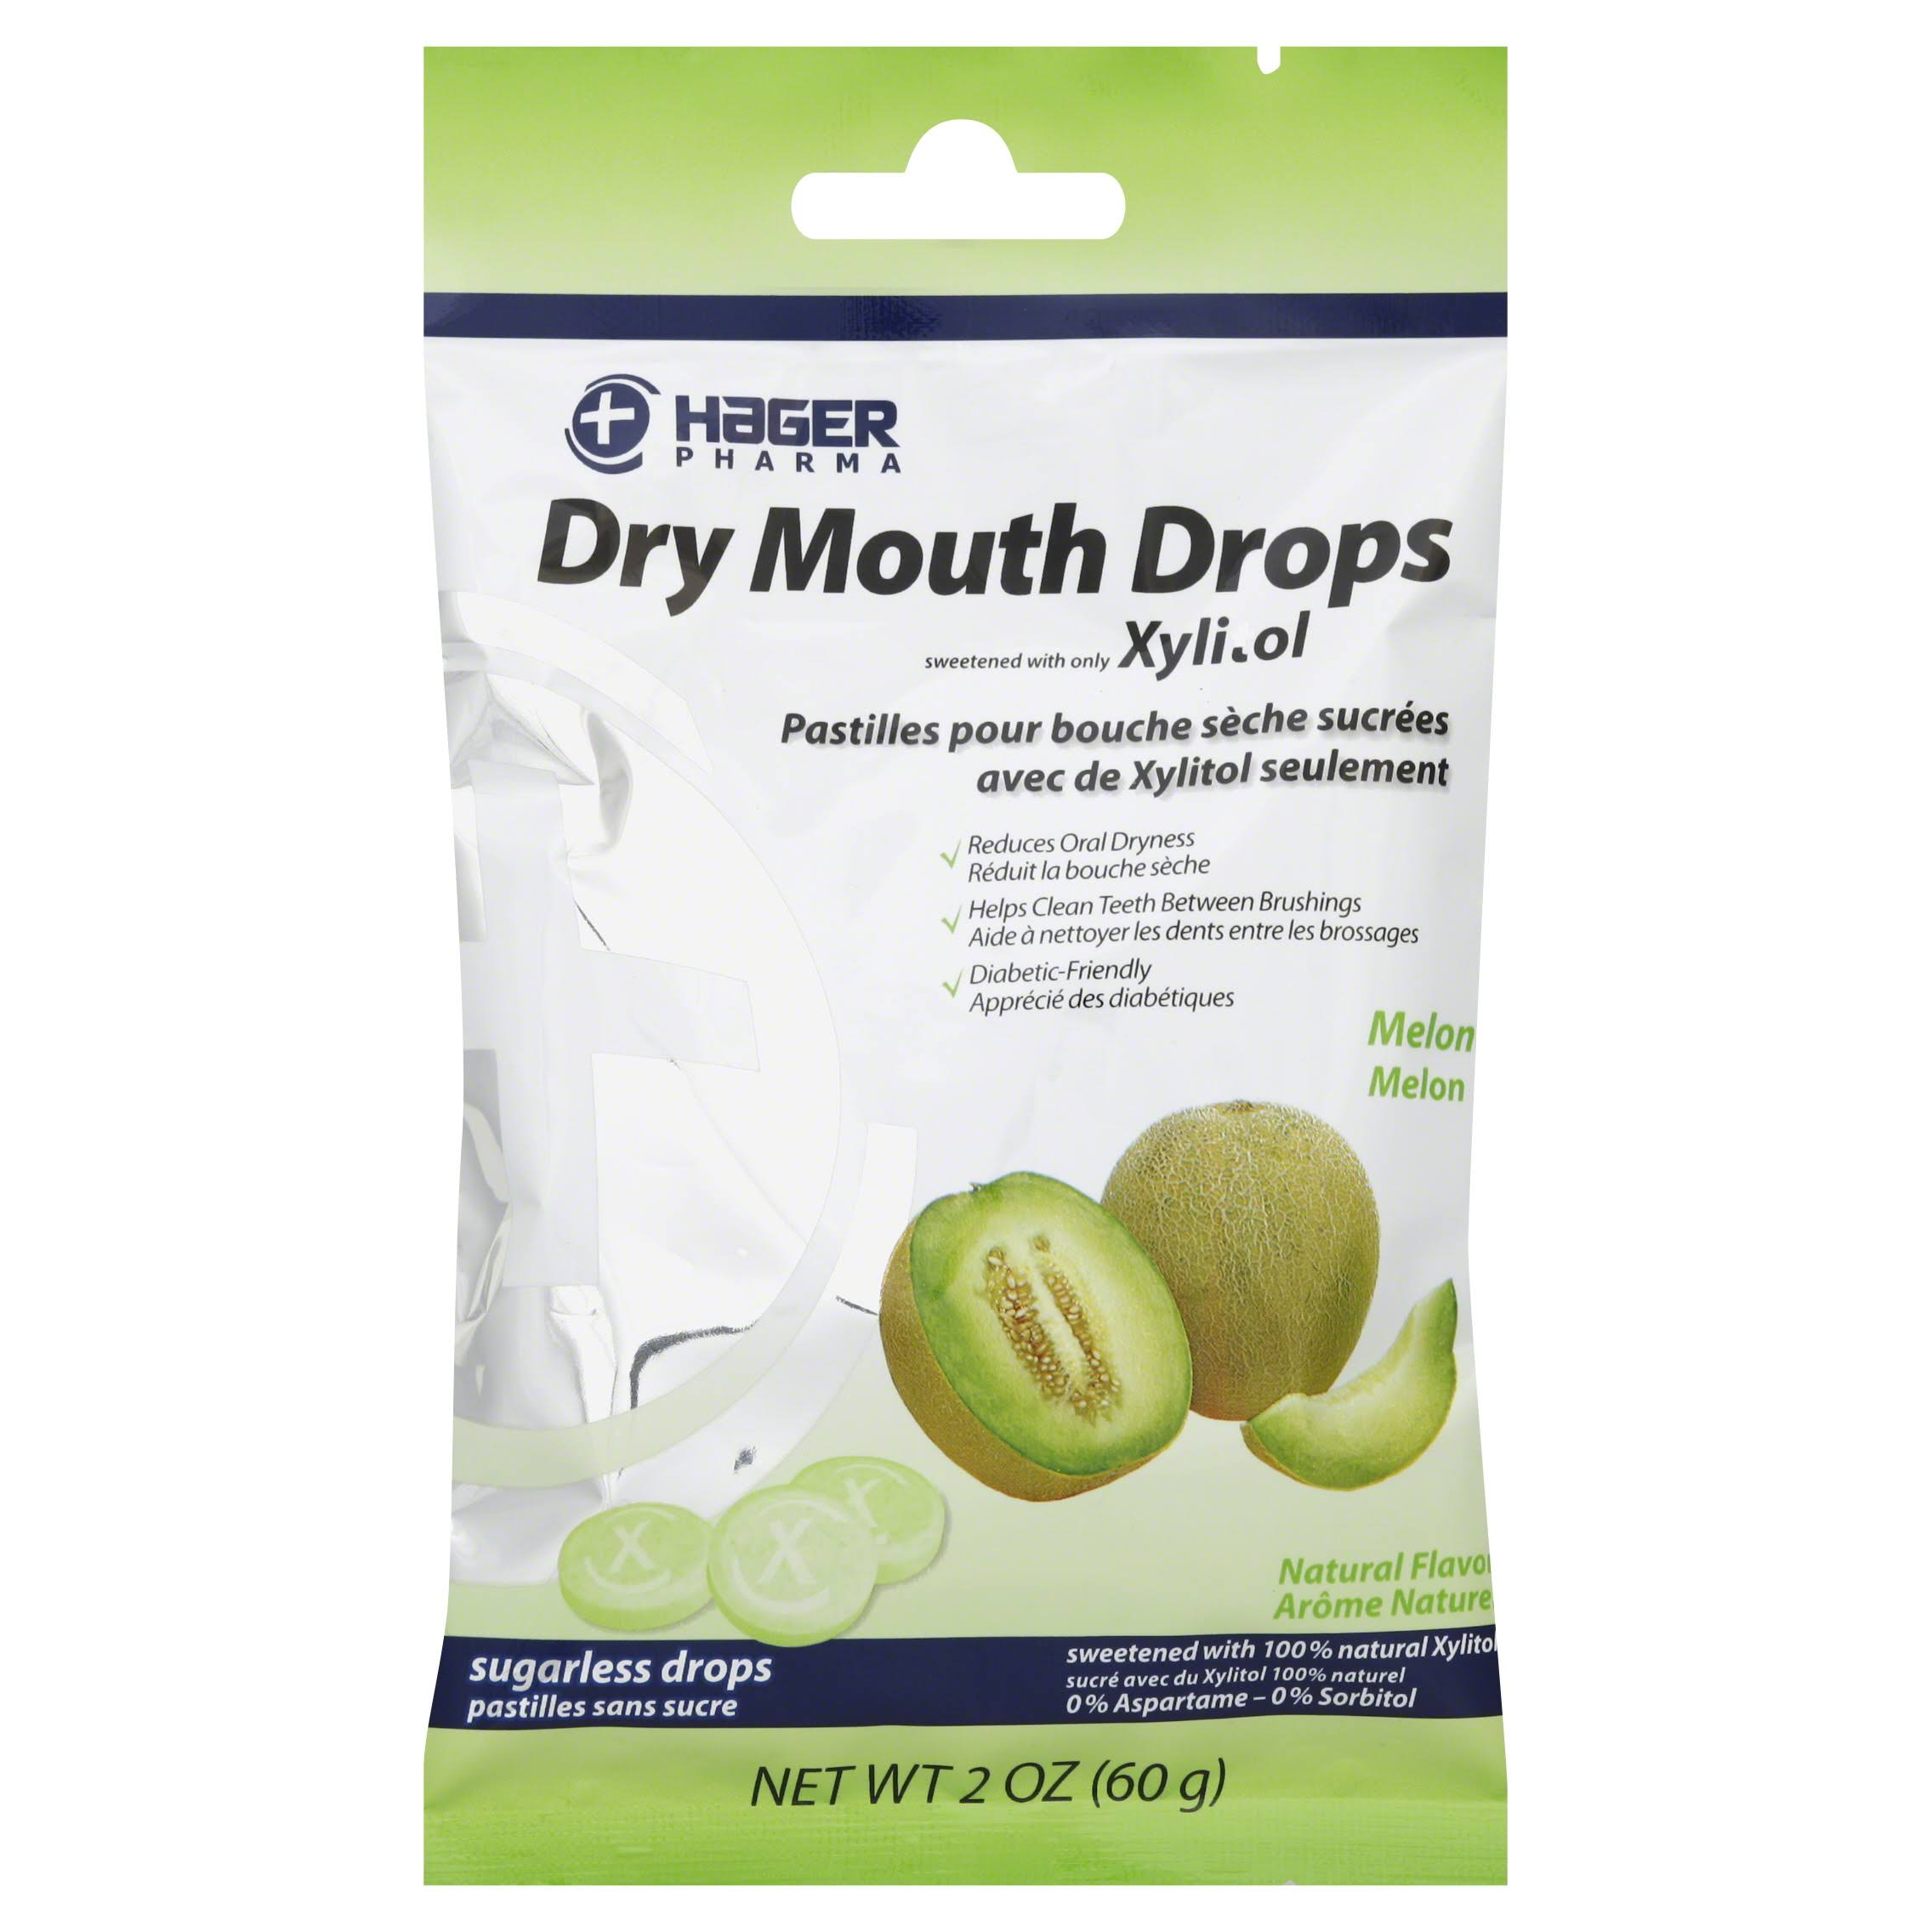 Hager Pharma Dry Mouth Drops - Melon